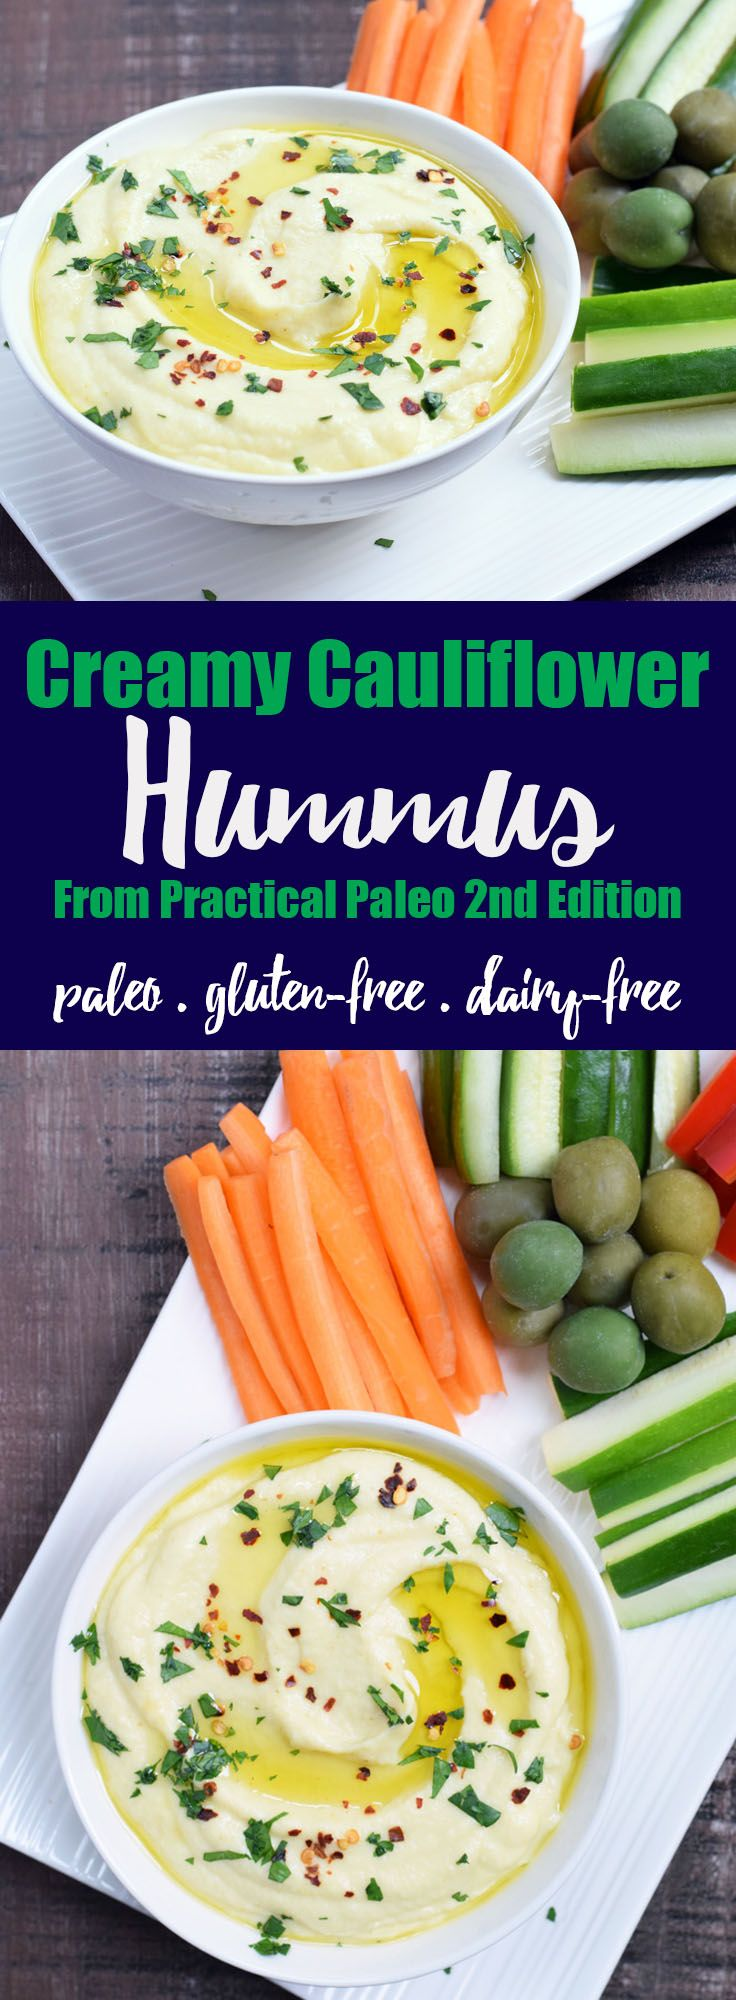 Creamy Cauliflower Hummus + Review of Practical Paleo 2nd Edition!